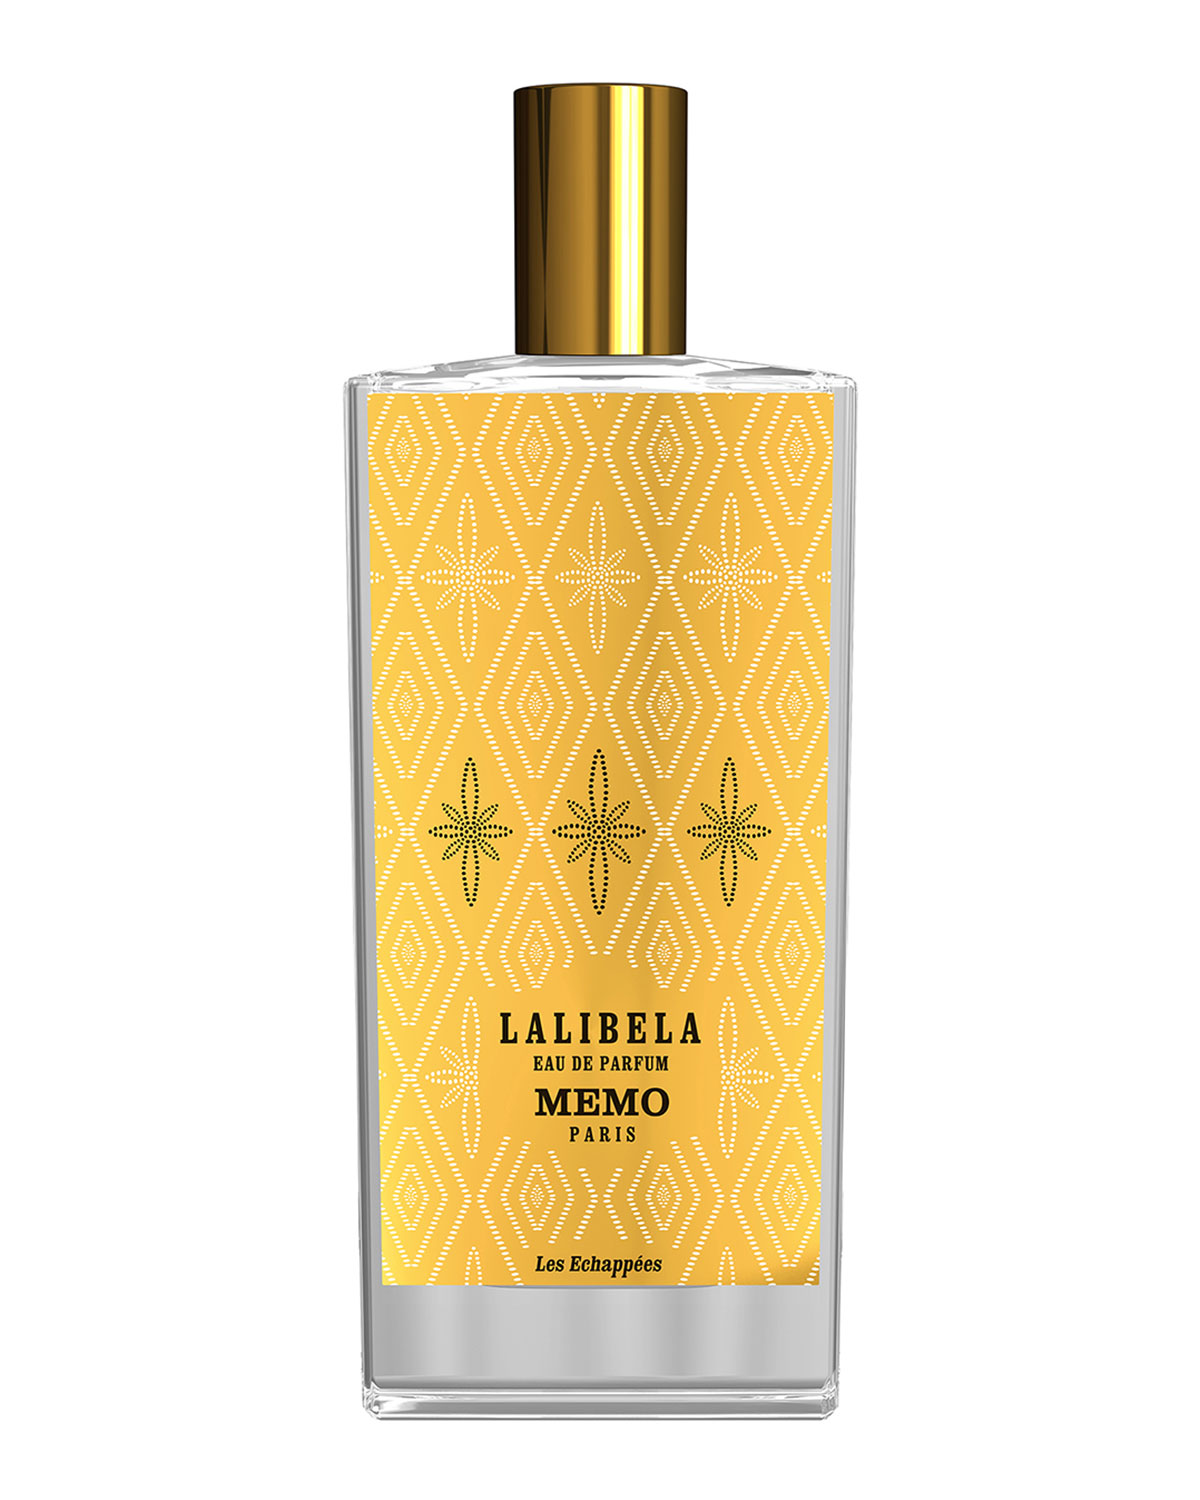 MEMO PARIS Lalibela Eau De Parfum, 2.5 Oz./ 75 Ml